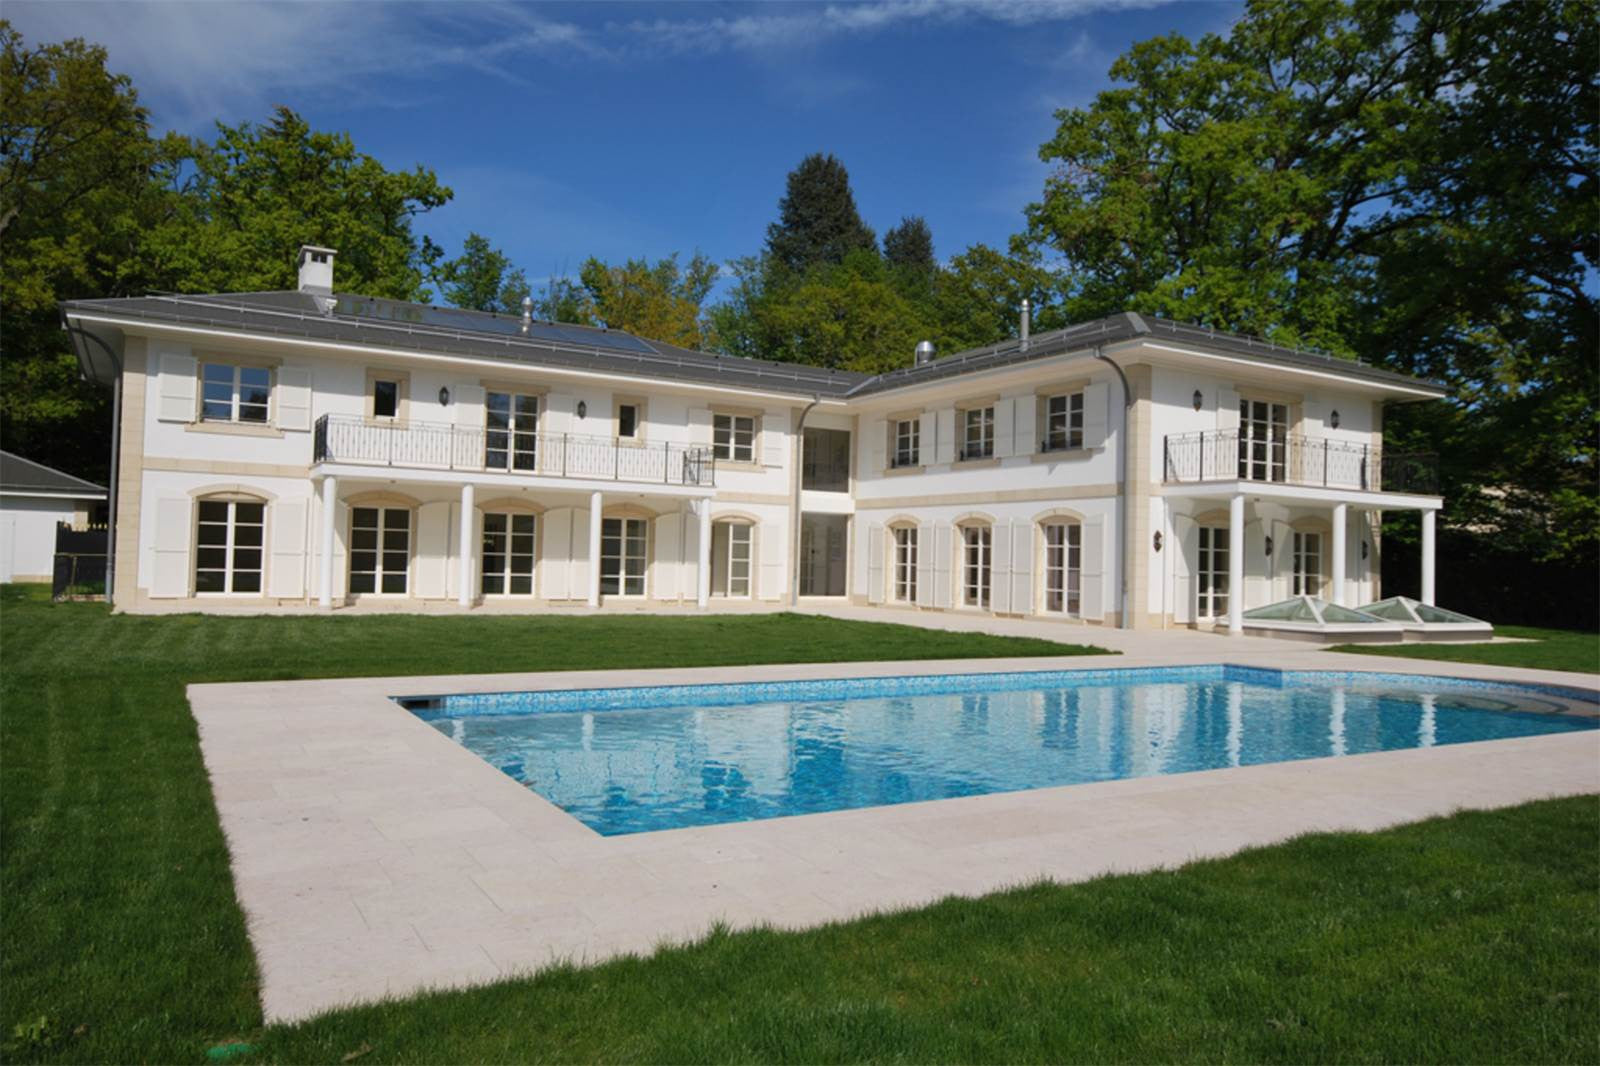 6 Bed Brand New Mansion Collonge-Bellerive, Geneva Switzerland